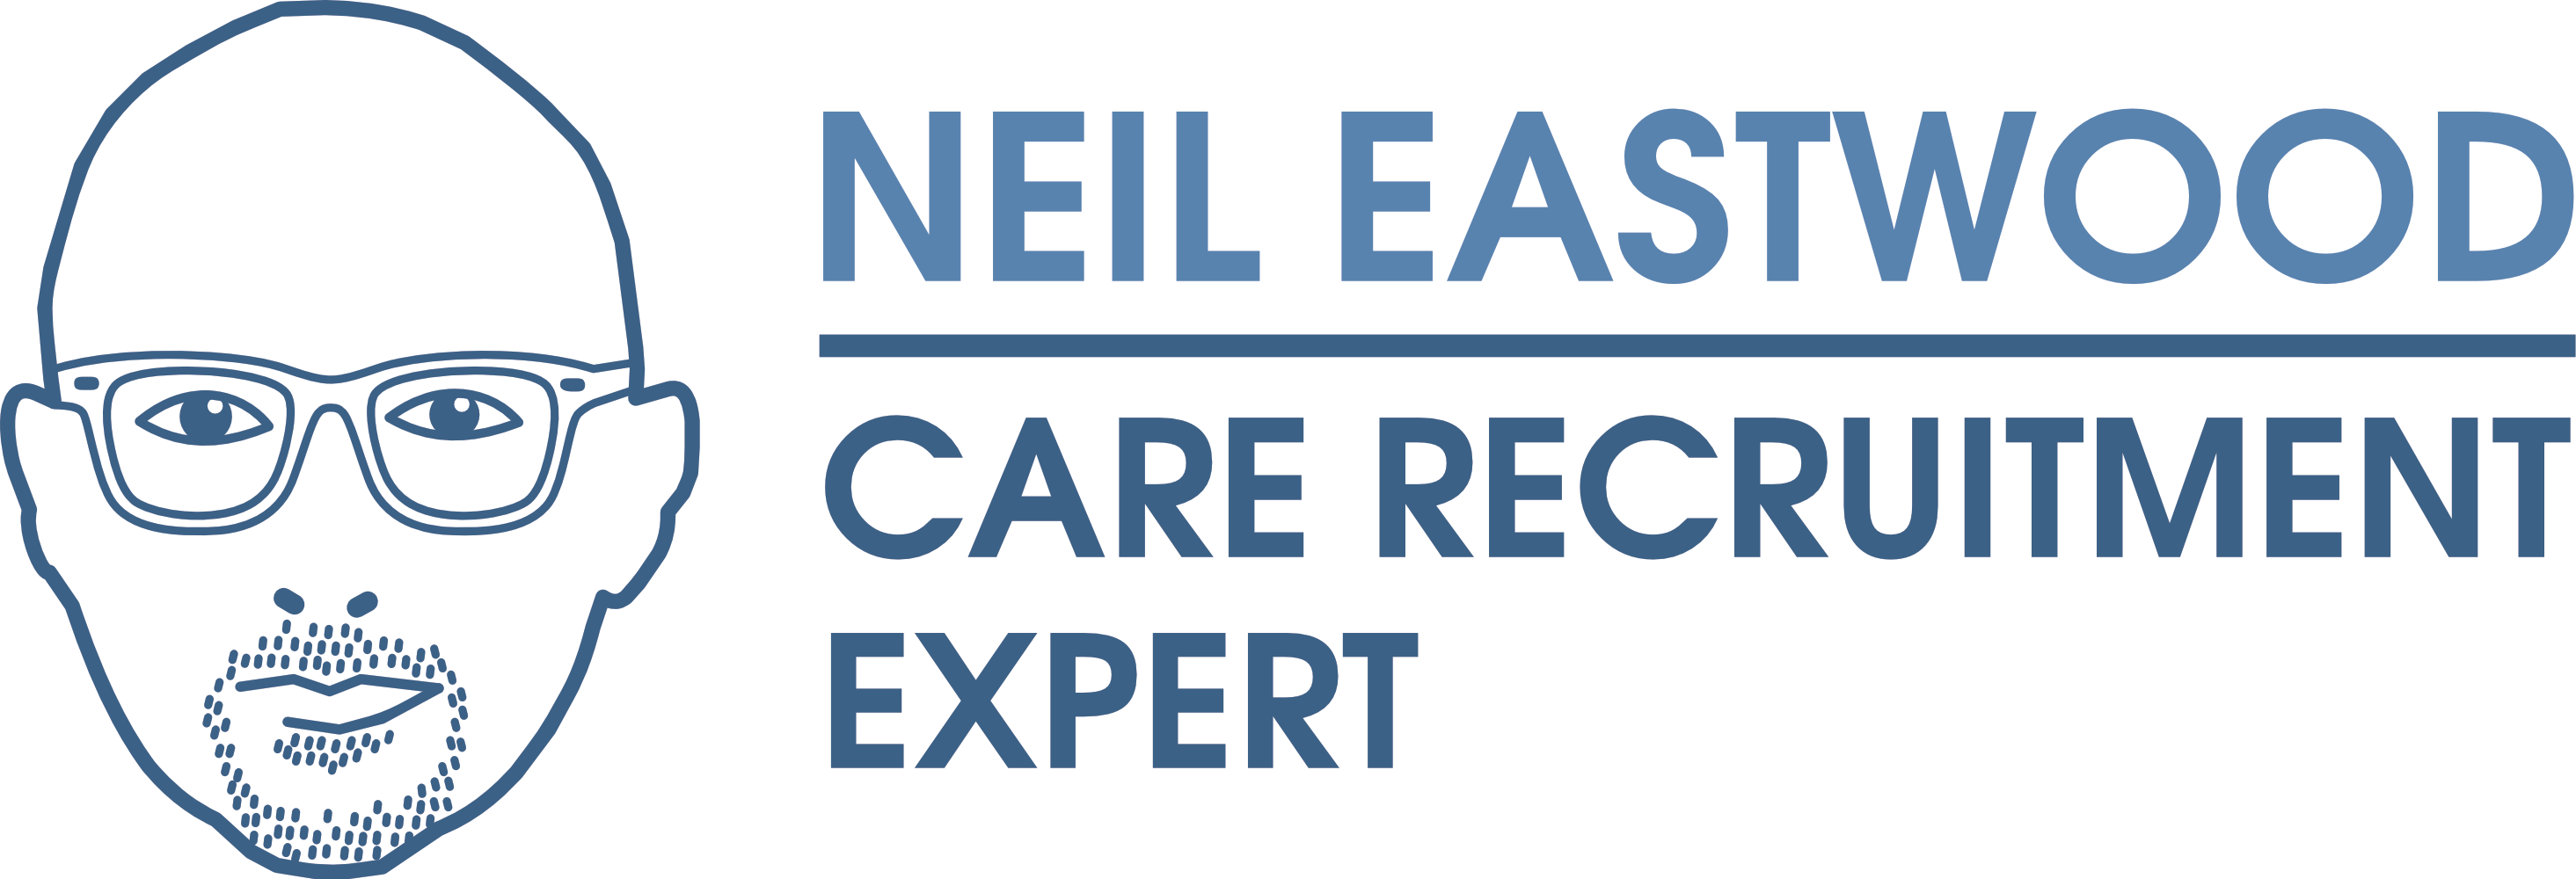 Neil Eastwood's Care Recruitment Academy